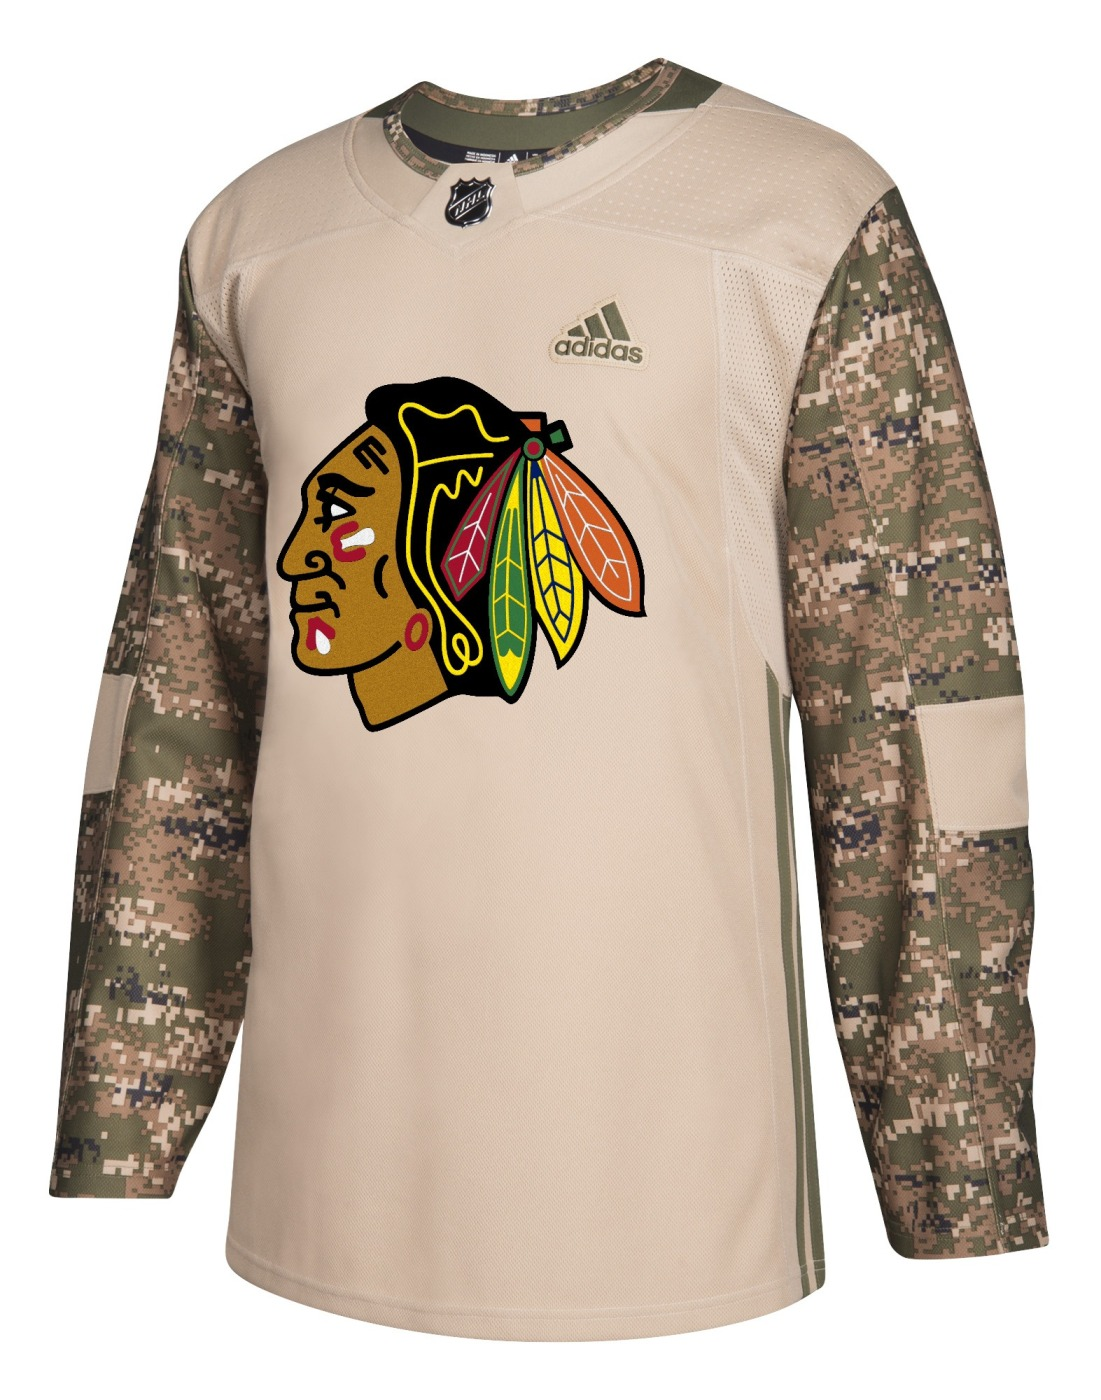 Chicago Blackhawks Adidas NHL Camouflage Pre-Game Authentic Warm Up Jersey